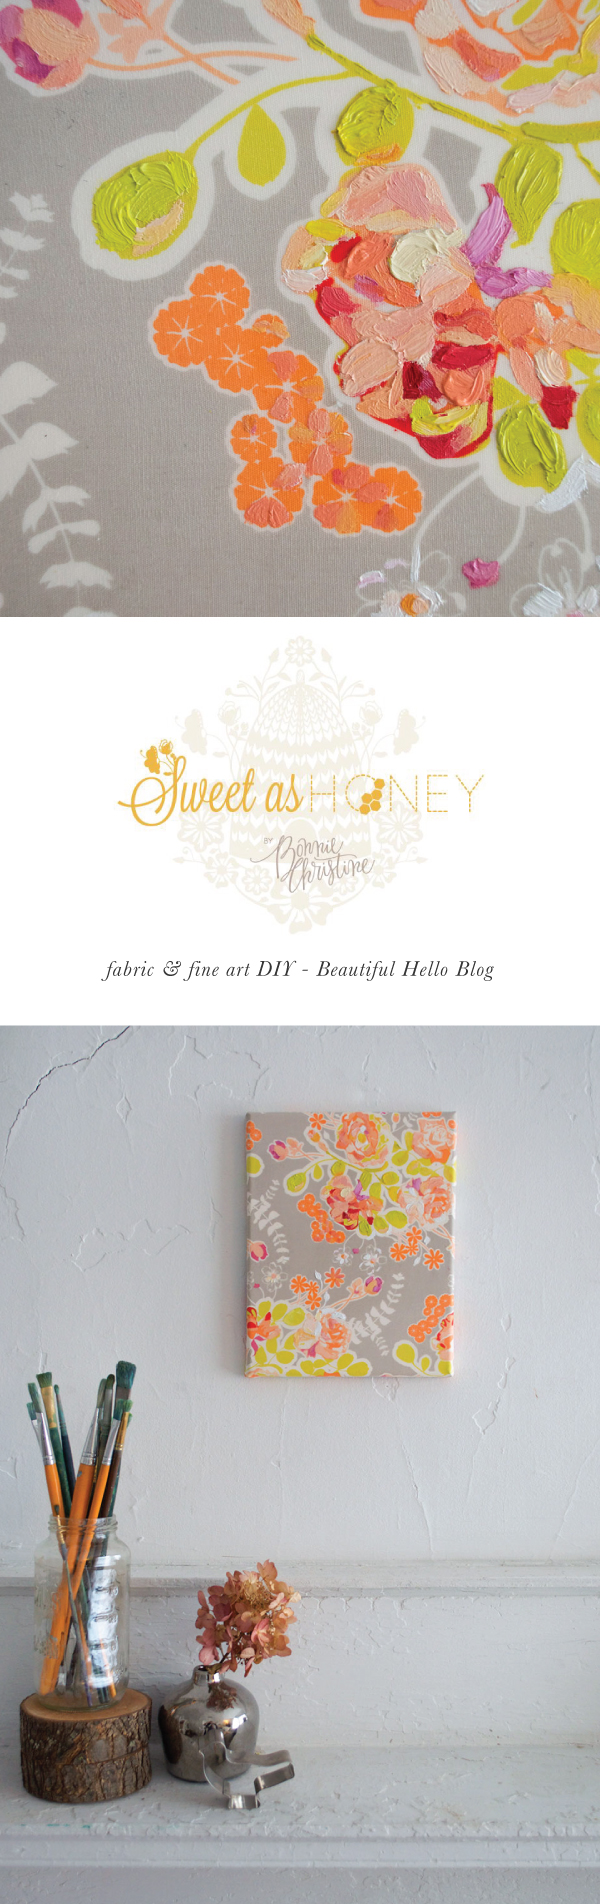 Fabric & Fine Art DIY: Sweet As Honey Design on Beautiful Hello Blog